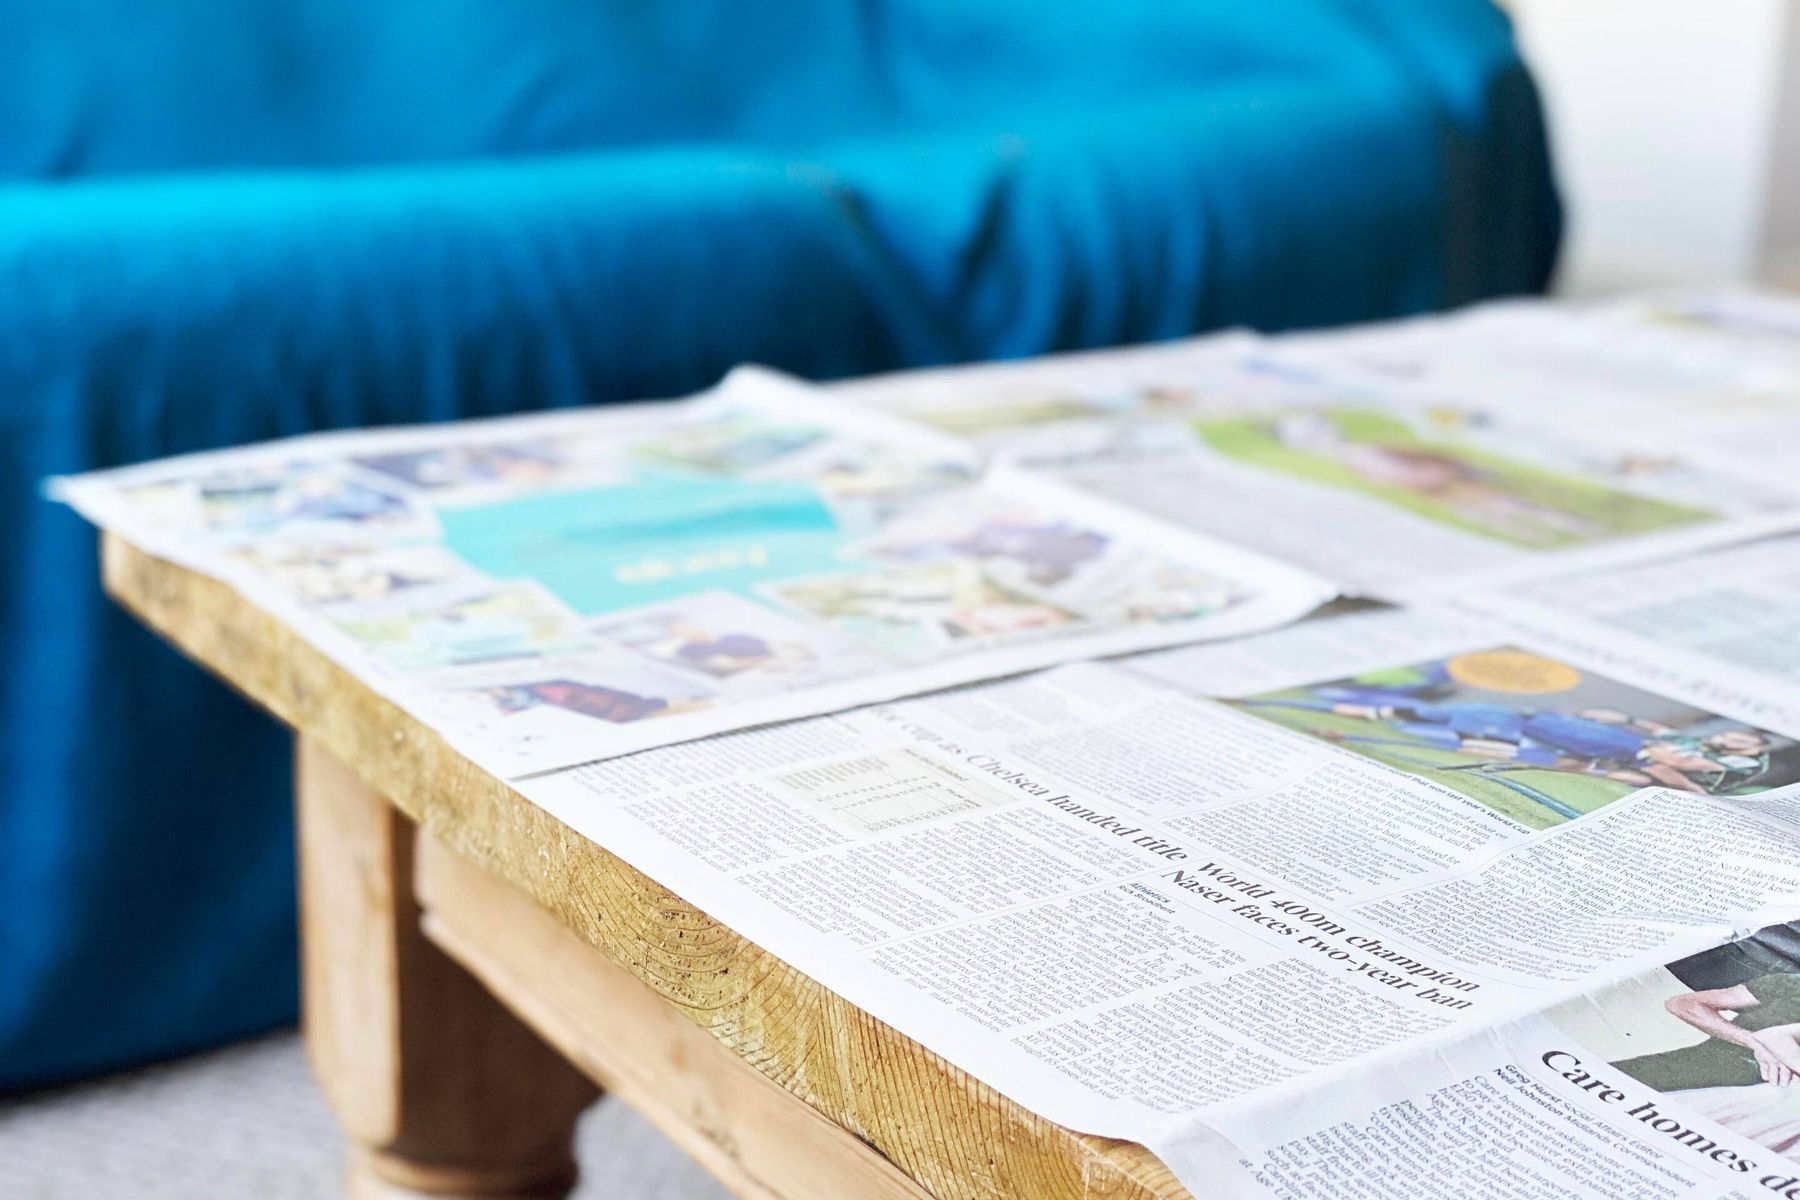 Coffee table covered in newspaper